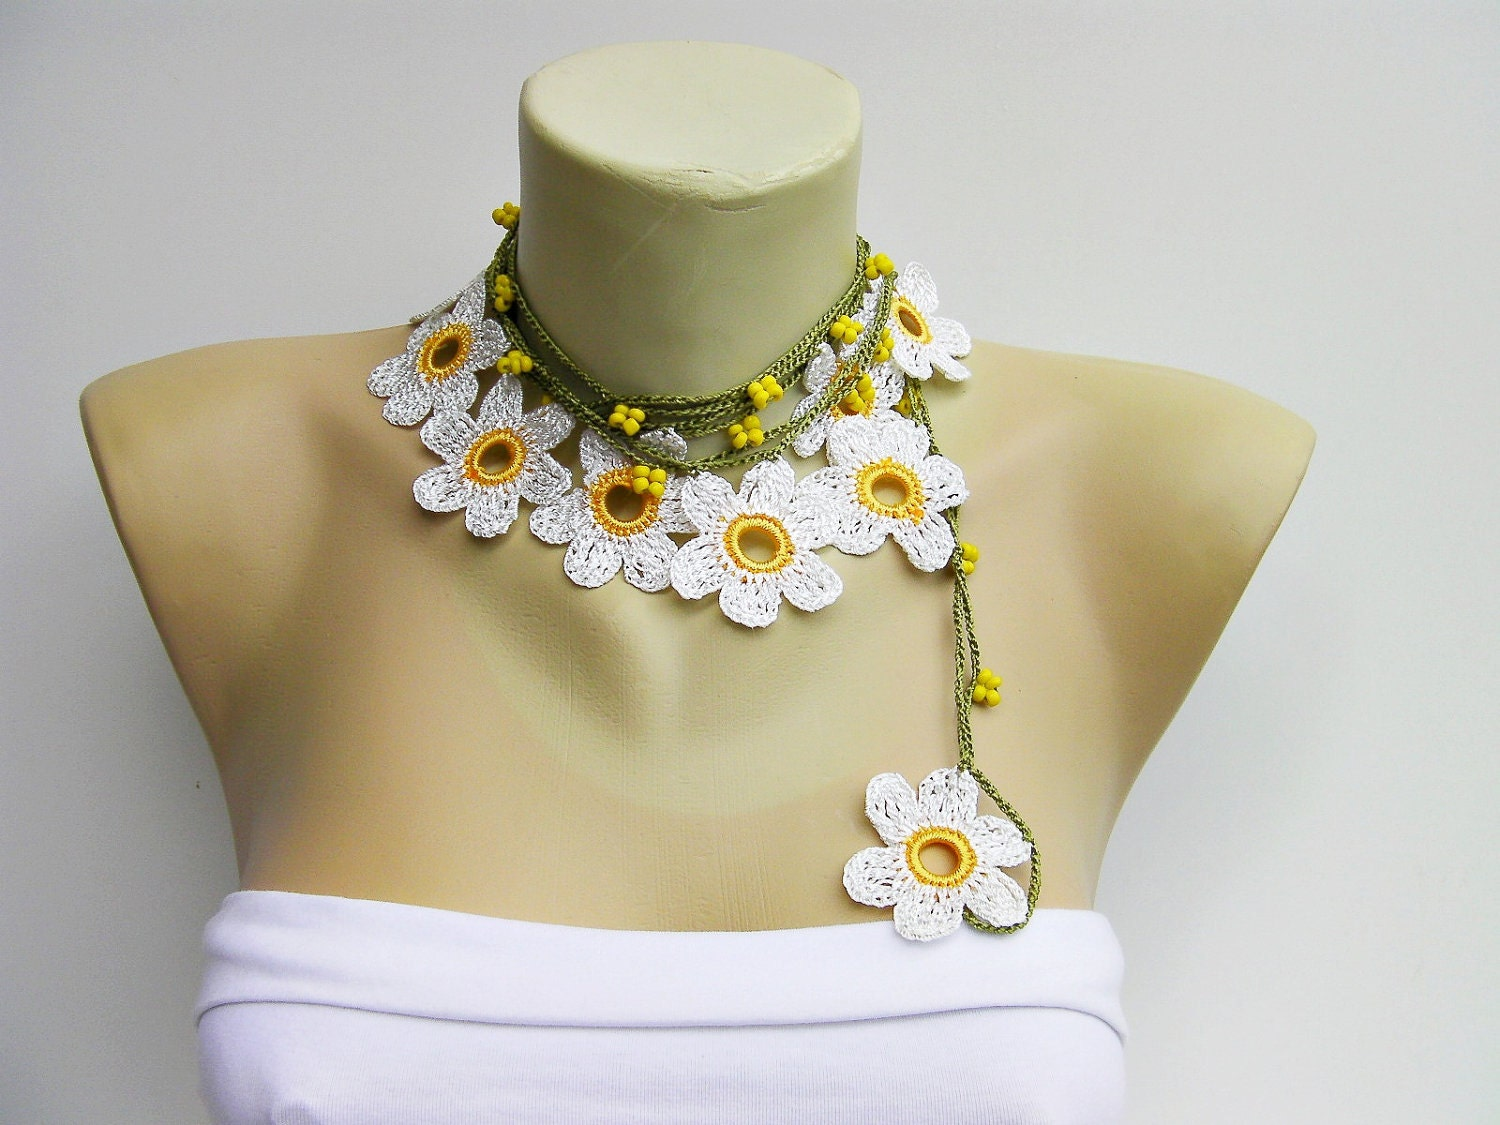 Beadwork necklace crochet beaded lariat necklace oya by SenasShop